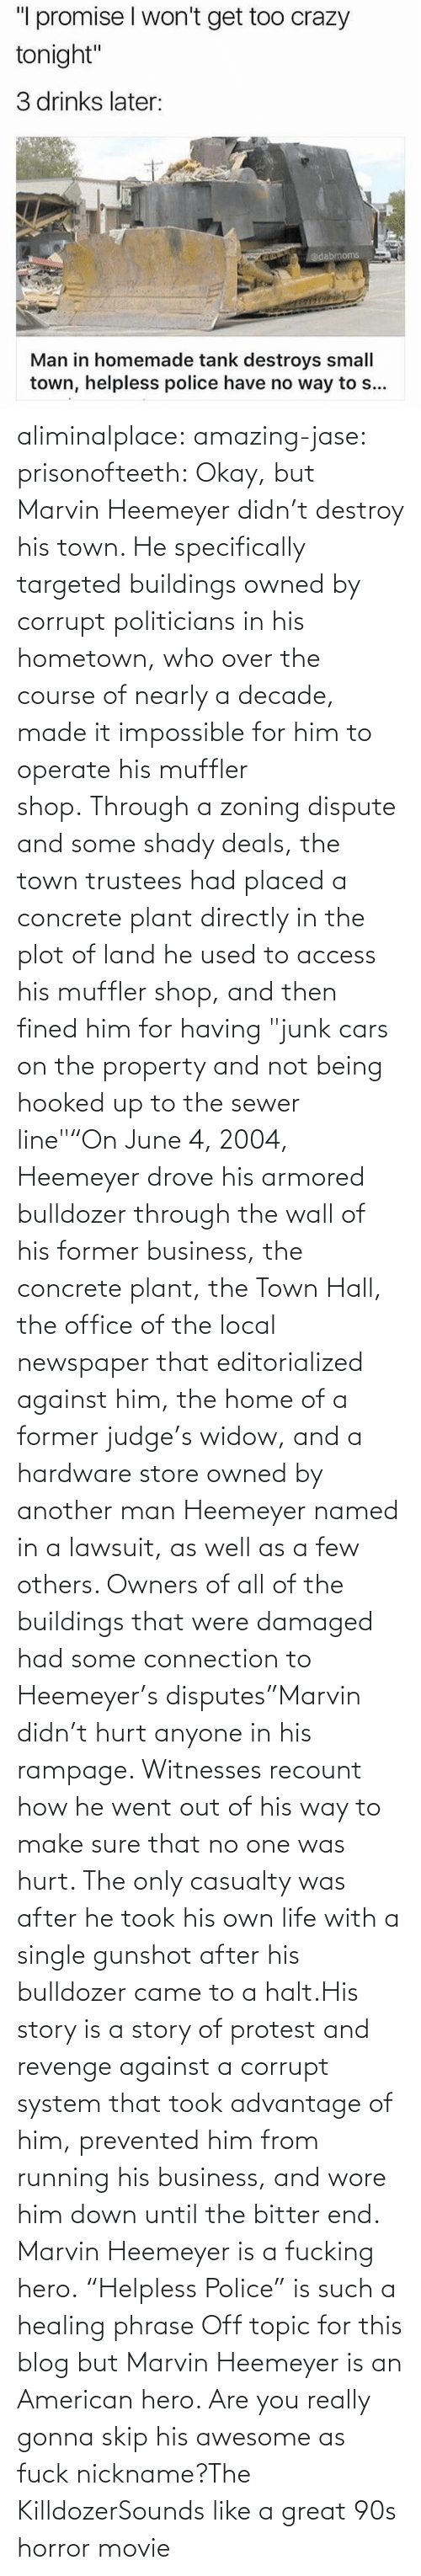 "Directly: aliminalplace: amazing-jase:  prisonofteeth: Okay, but Marvin Heemeyer didn't destroy his town. He specifically targeted buildings owned by corrupt politicians in his hometown, who over the course of nearly a decade, made it impossible for him to operate his muffler shop. Through a zoning dispute and some shady deals, the town trustees had placed a concrete plant directly in the plot of land he used to access his muffler shop, and then fined him for having ""junk cars on the property and not being hooked up to the sewer line""""On June 4, 2004, Heemeyer drove his armored bulldozer through the wall of his former business, the concrete plant, the Town Hall, the office of the local newspaper that editorialized against him, the home of a former judge's widow, and a hardware store owned by another man Heemeyer named in a lawsuit, as well as a few others. Owners of all of the buildings that were damaged had some connection to Heemeyer's disputes""Marvin didn't hurt anyone in his rampage. Witnesses recount how he went out of his way to make sure that no one was hurt. The only casualty was after he took his own life with a single gunshot after his bulldozer came to a halt.His story is a story of protest and revenge against a corrupt system that took advantage of him, prevented him from running his business, and wore him down until the bitter end. Marvin Heemeyer is a fucking hero. ""Helpless Police"" is such a healing phrase    Off topic for this blog but Marvin Heemeyer is an American hero.     Are you really gonna skip his awesome as fuck nickname?The KilldozerSounds like a great 90s horror movie"